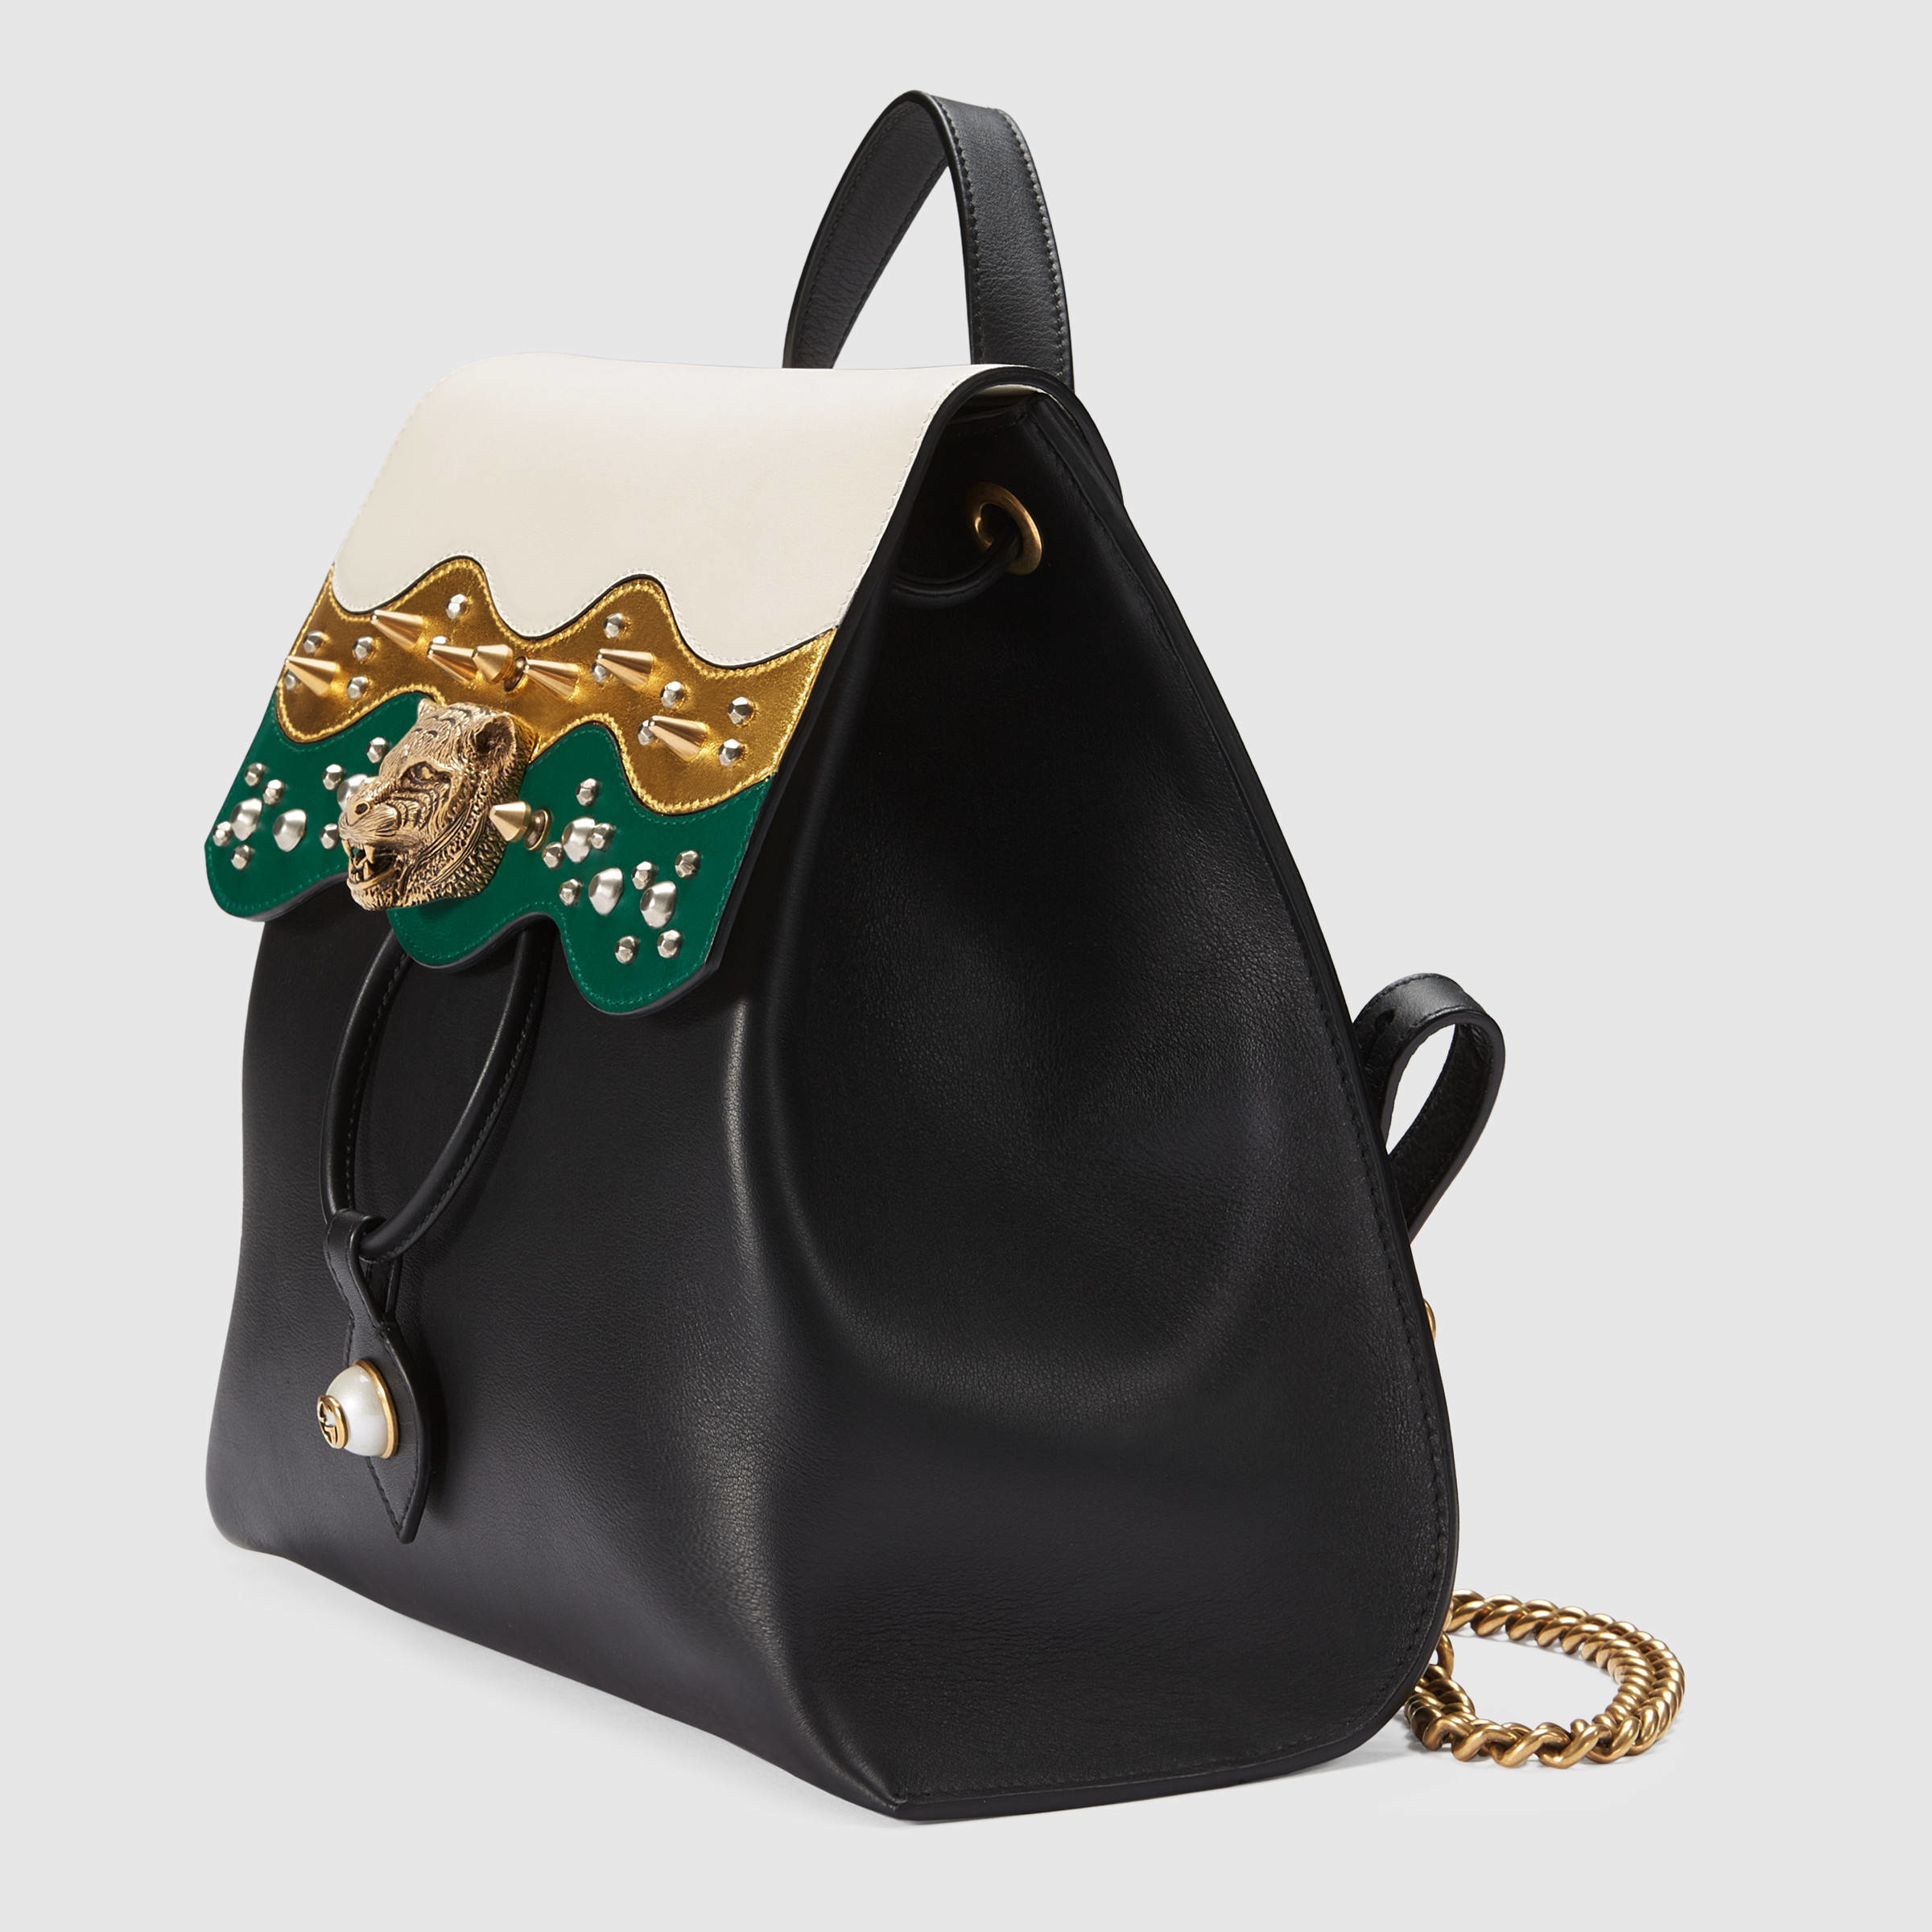 e13f8d39f71 Lyst - Gucci Leather Studded Backpack in Black